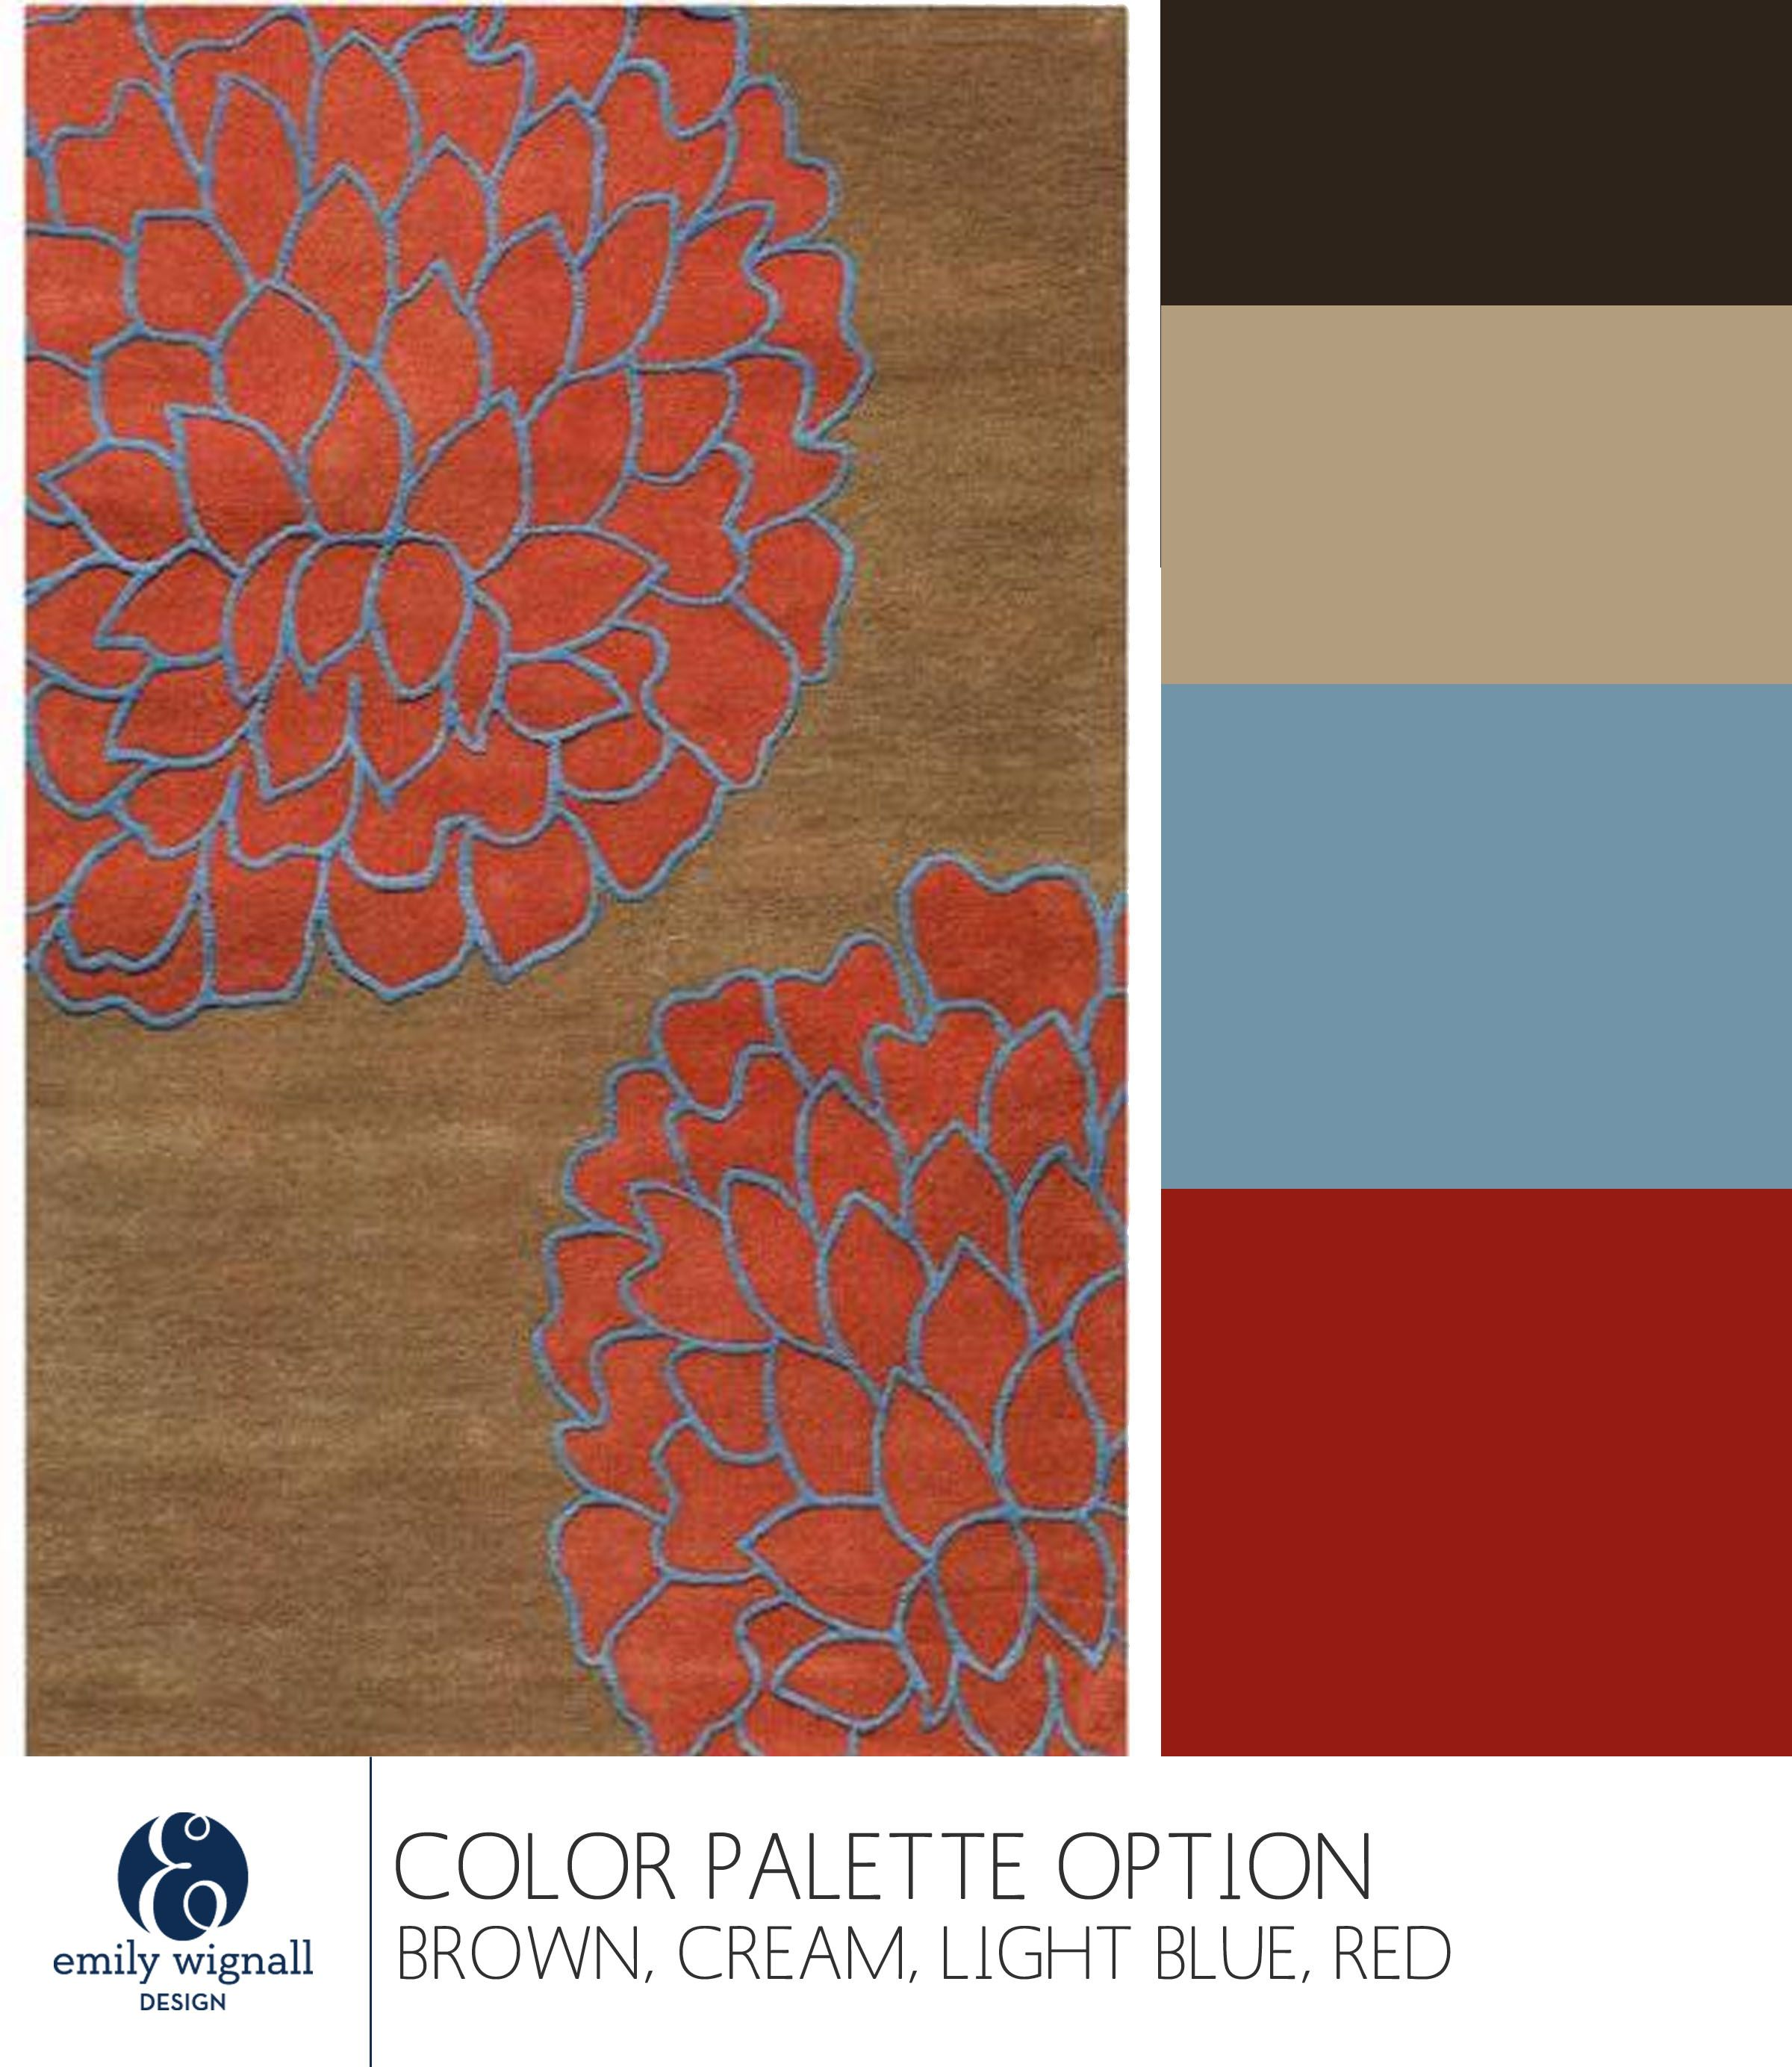 Uncategorized Red Color Pallette brown cream red light blue color palette option inspired by this more